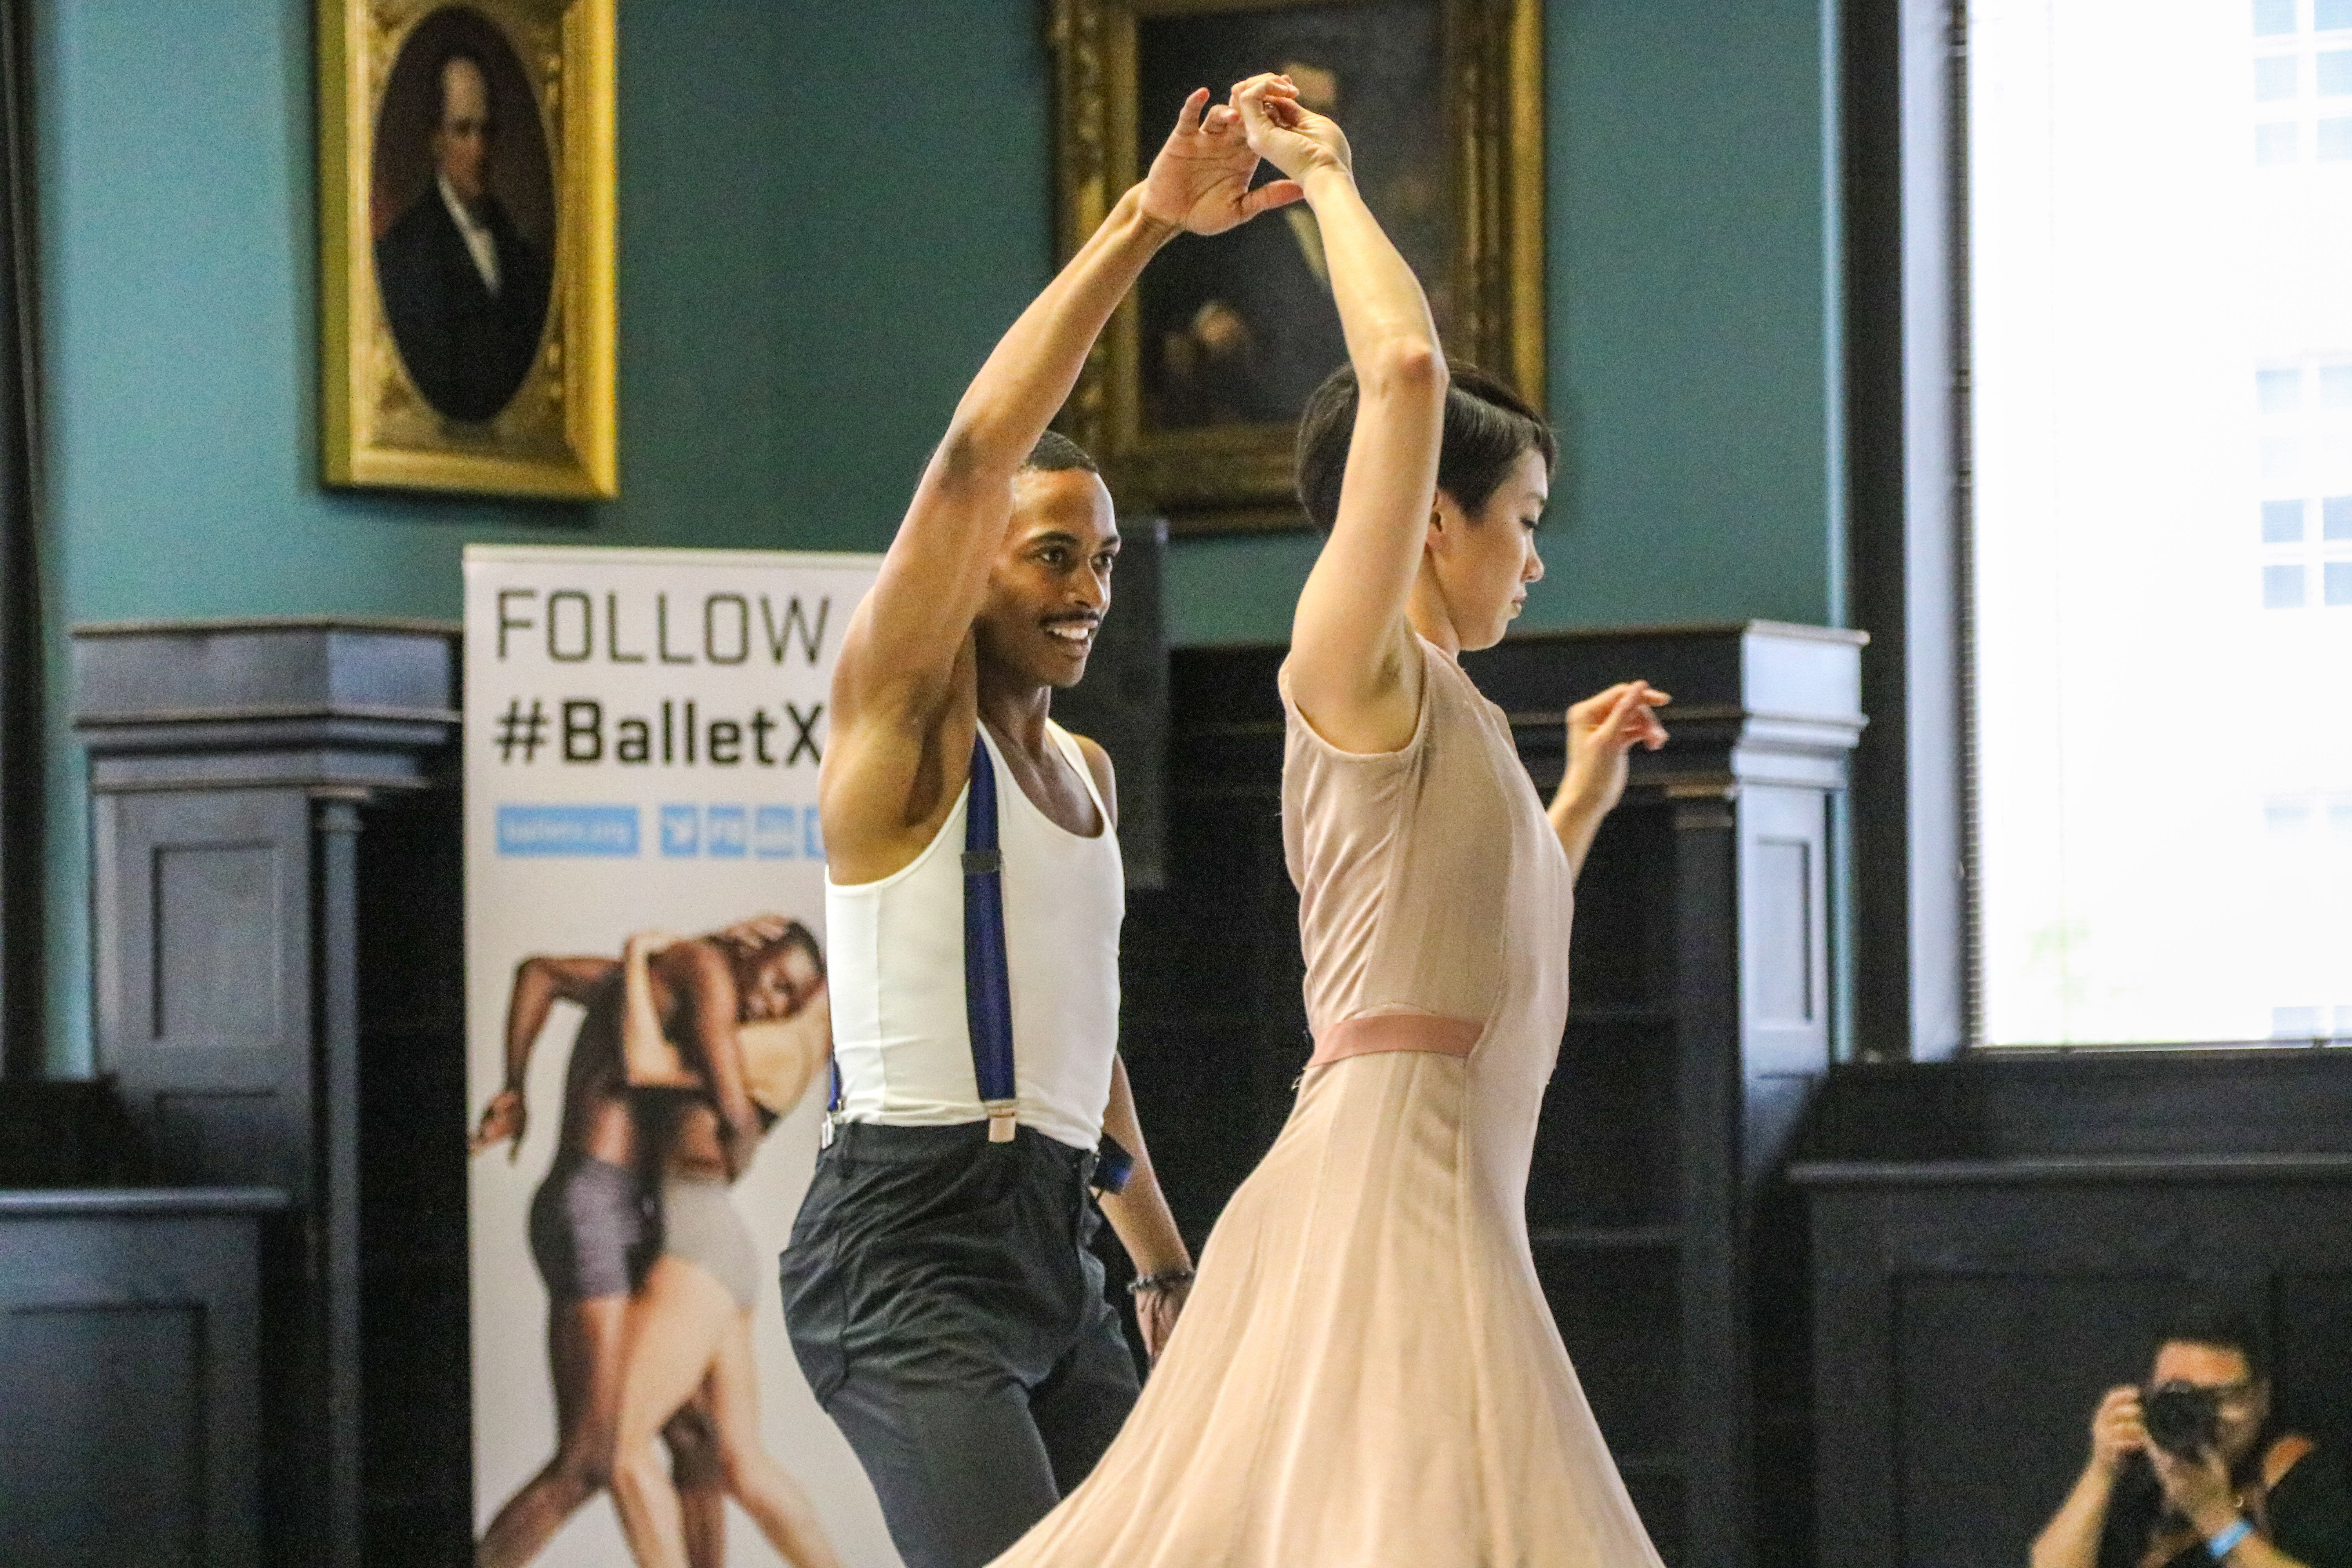 Performance by Ballet X in Academy Library